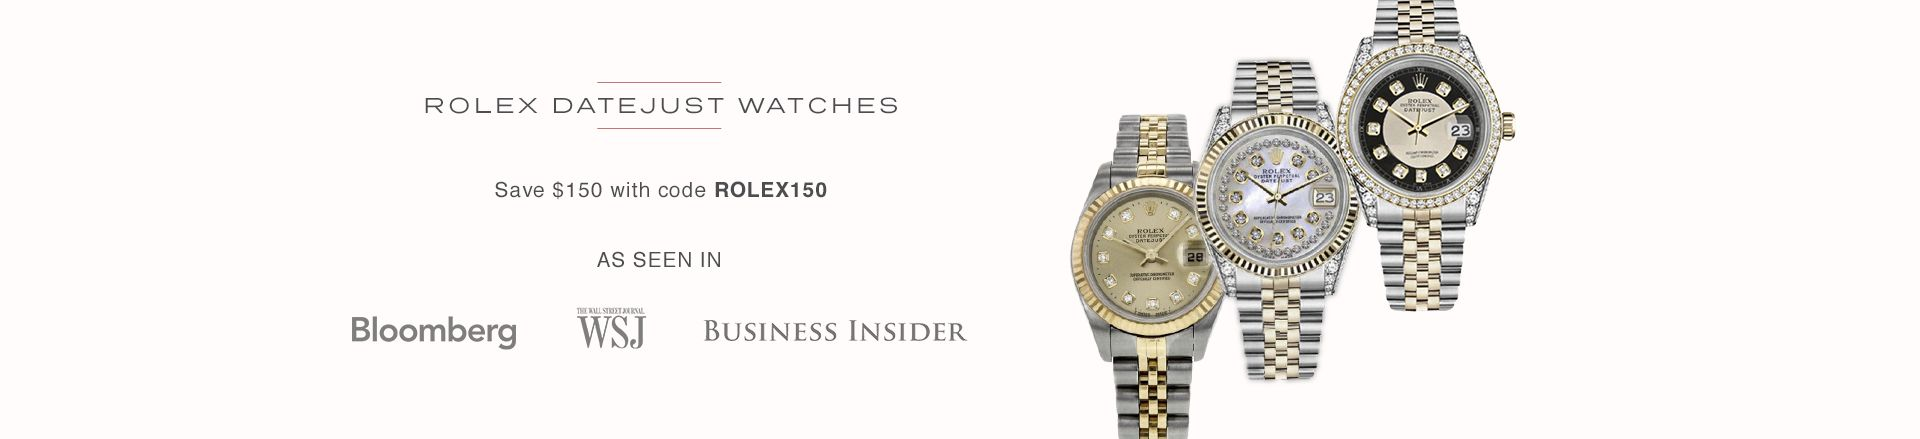 Rolex Datejust Watches